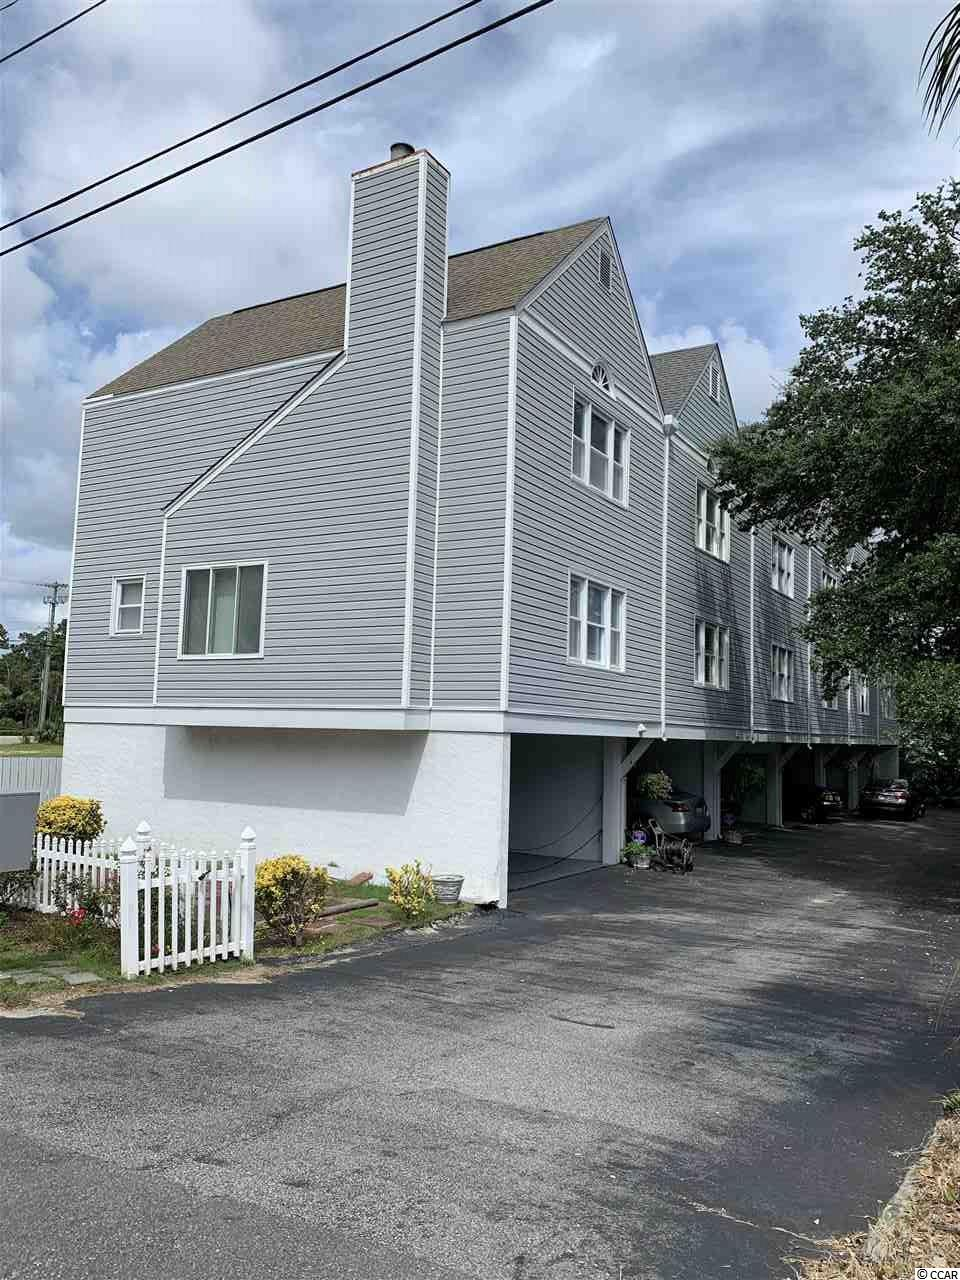 Look no further! A very rare opportunity to own a townhome with two car carport located under the unit and just a short walking distance to the Atlantic Ocean. Do not wait to call this townhome your perfect beach getaway home or make it into a great investment opportunity as short and long term rentals are allowed. This condo is conveniently located to all the main local attractions our Myrtle Beach area has to offer.